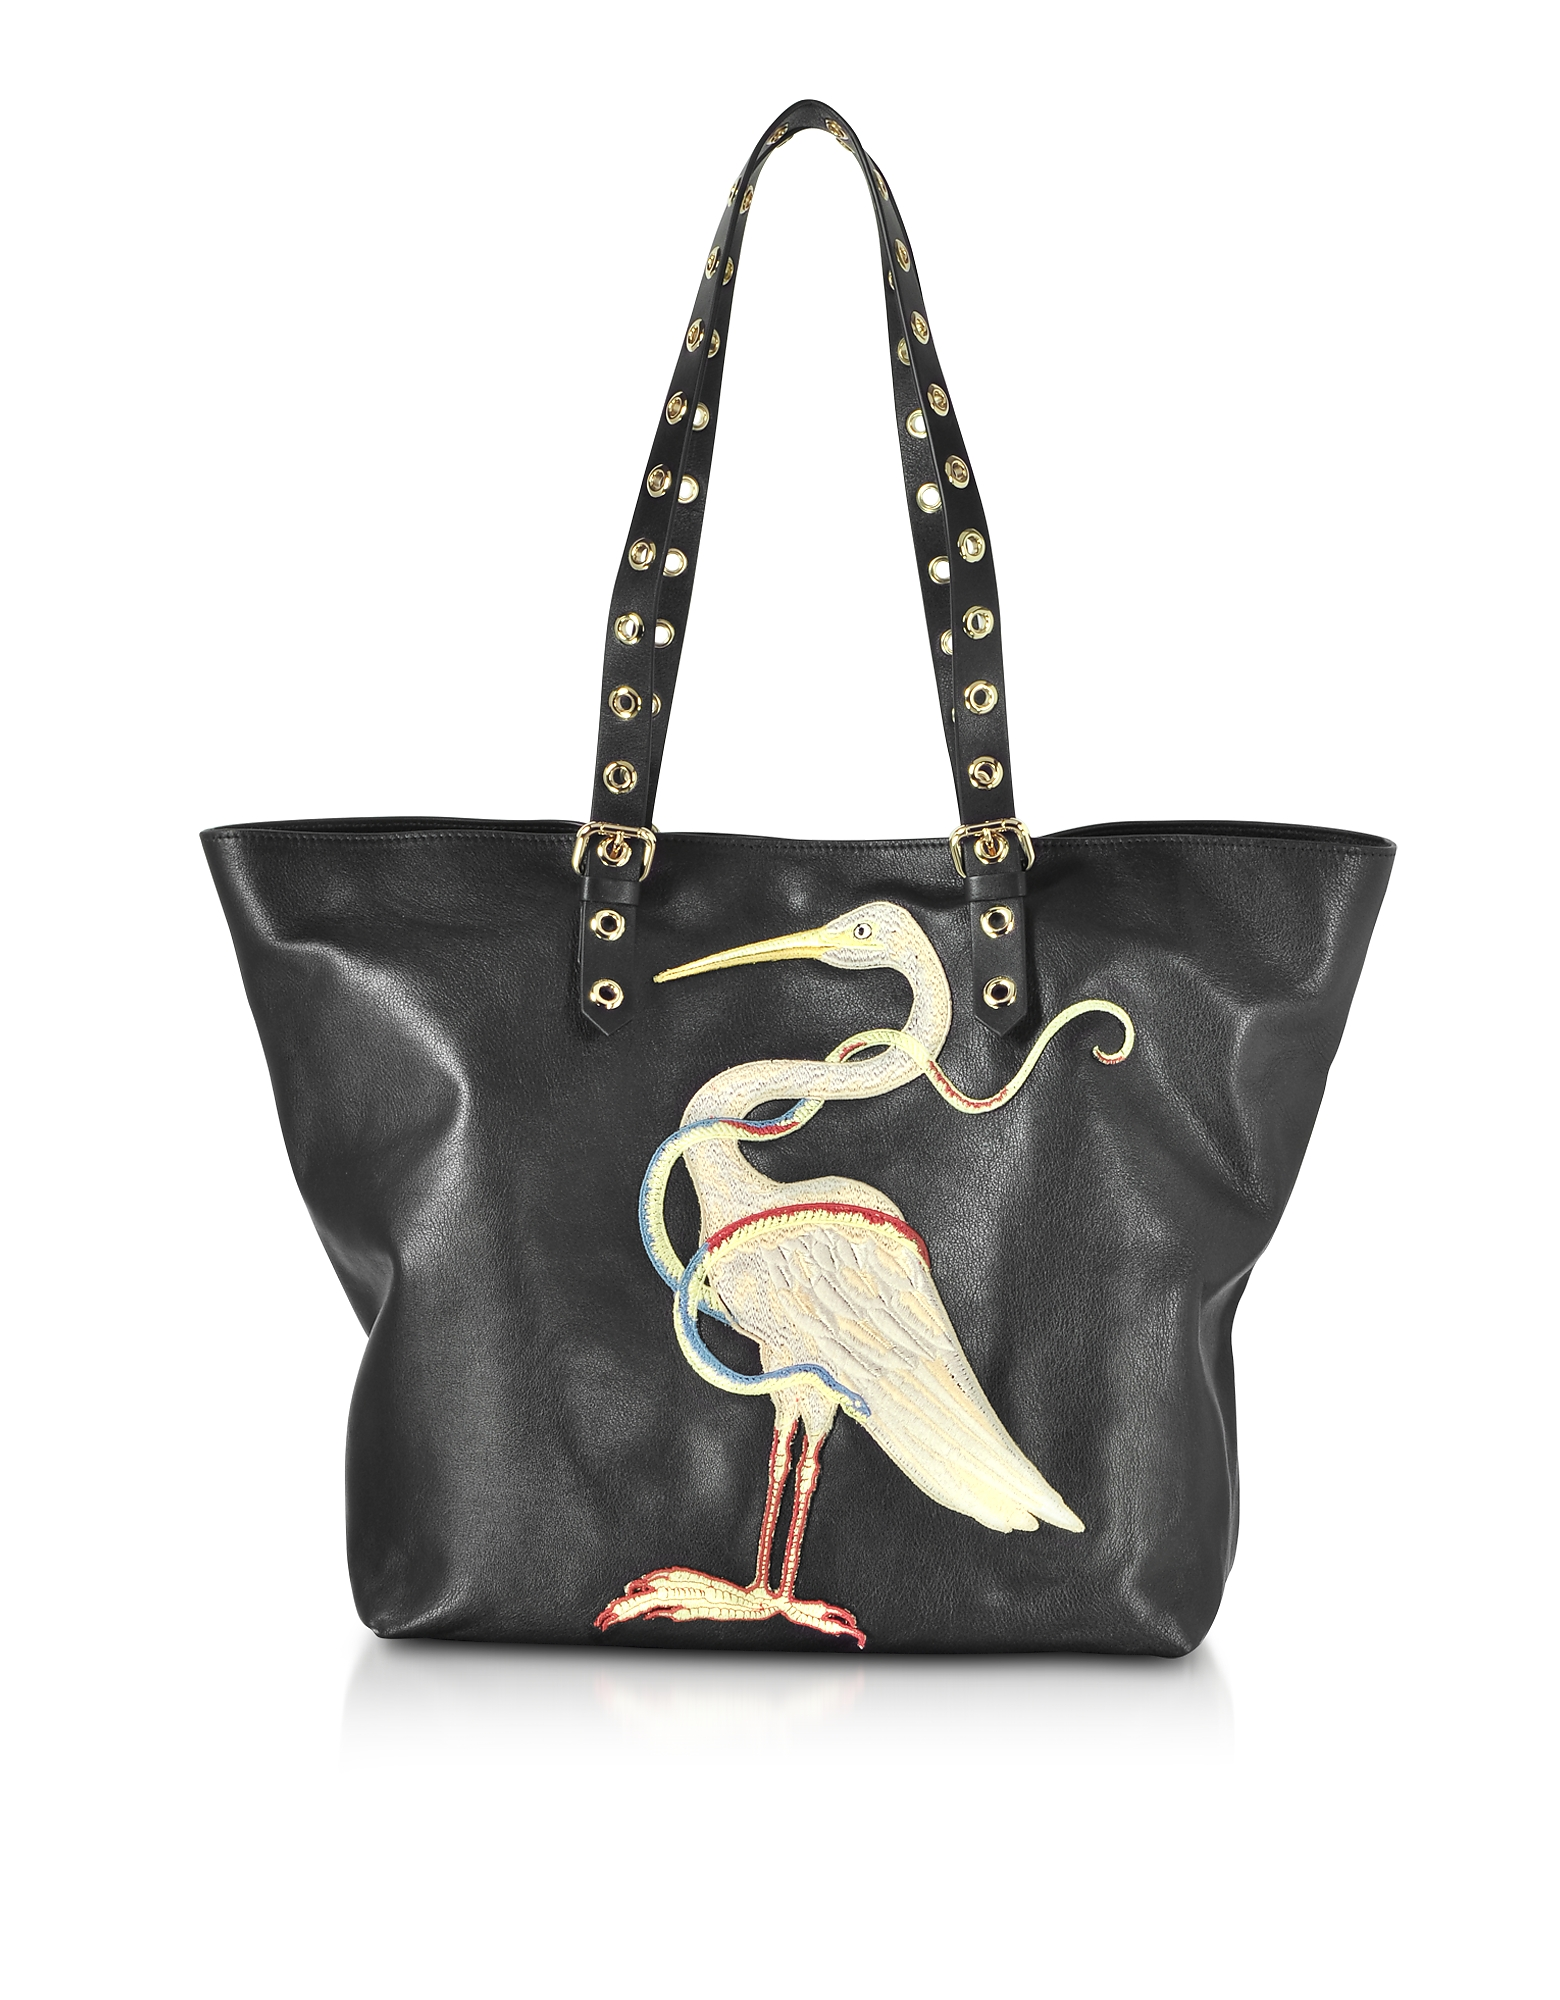 Black Large Leather Tote